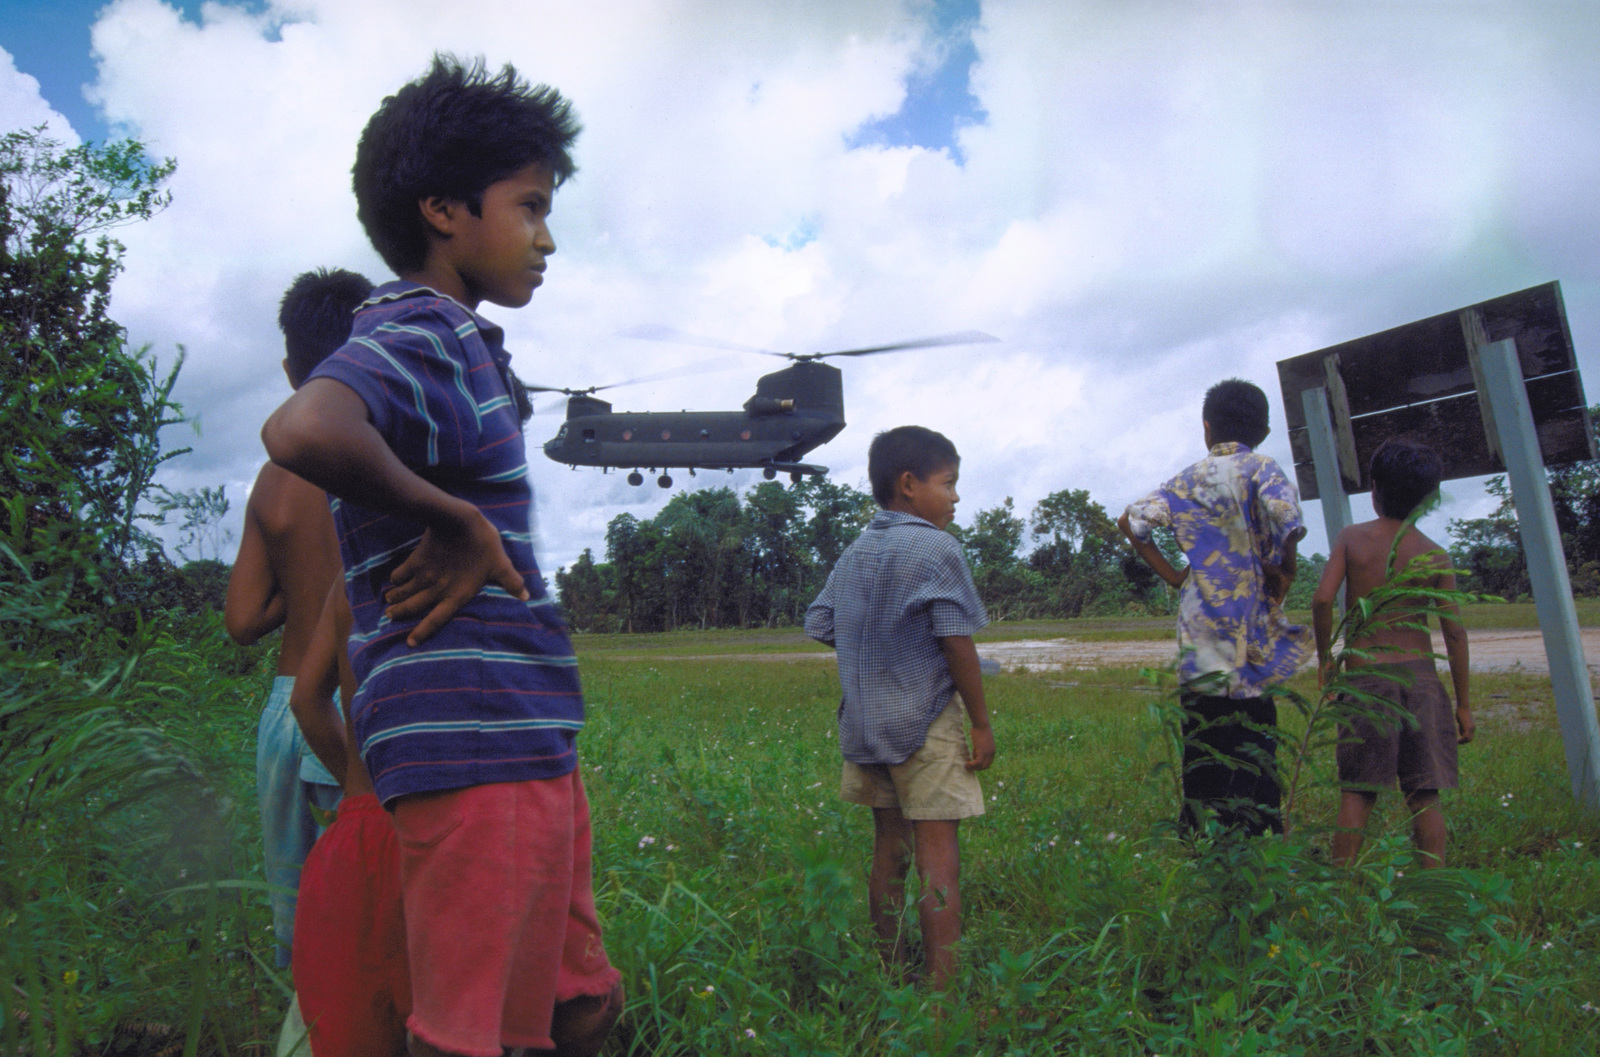 Children from the village of Kumaka wait at Bemechi Air Strip as a CH-47 helicopter prepares to land in the background. The helicopter from Detachment 1, Company F, 106th Aviation are supporting the first combined humanitarian and civic assistance exercise conducted between the United States and Guyana. Military personnel from Air Force, Air Force Reserve & National Guard, Army, Army National Guard and Marine Corps participated in the exercise which included engineering and medical readiness training